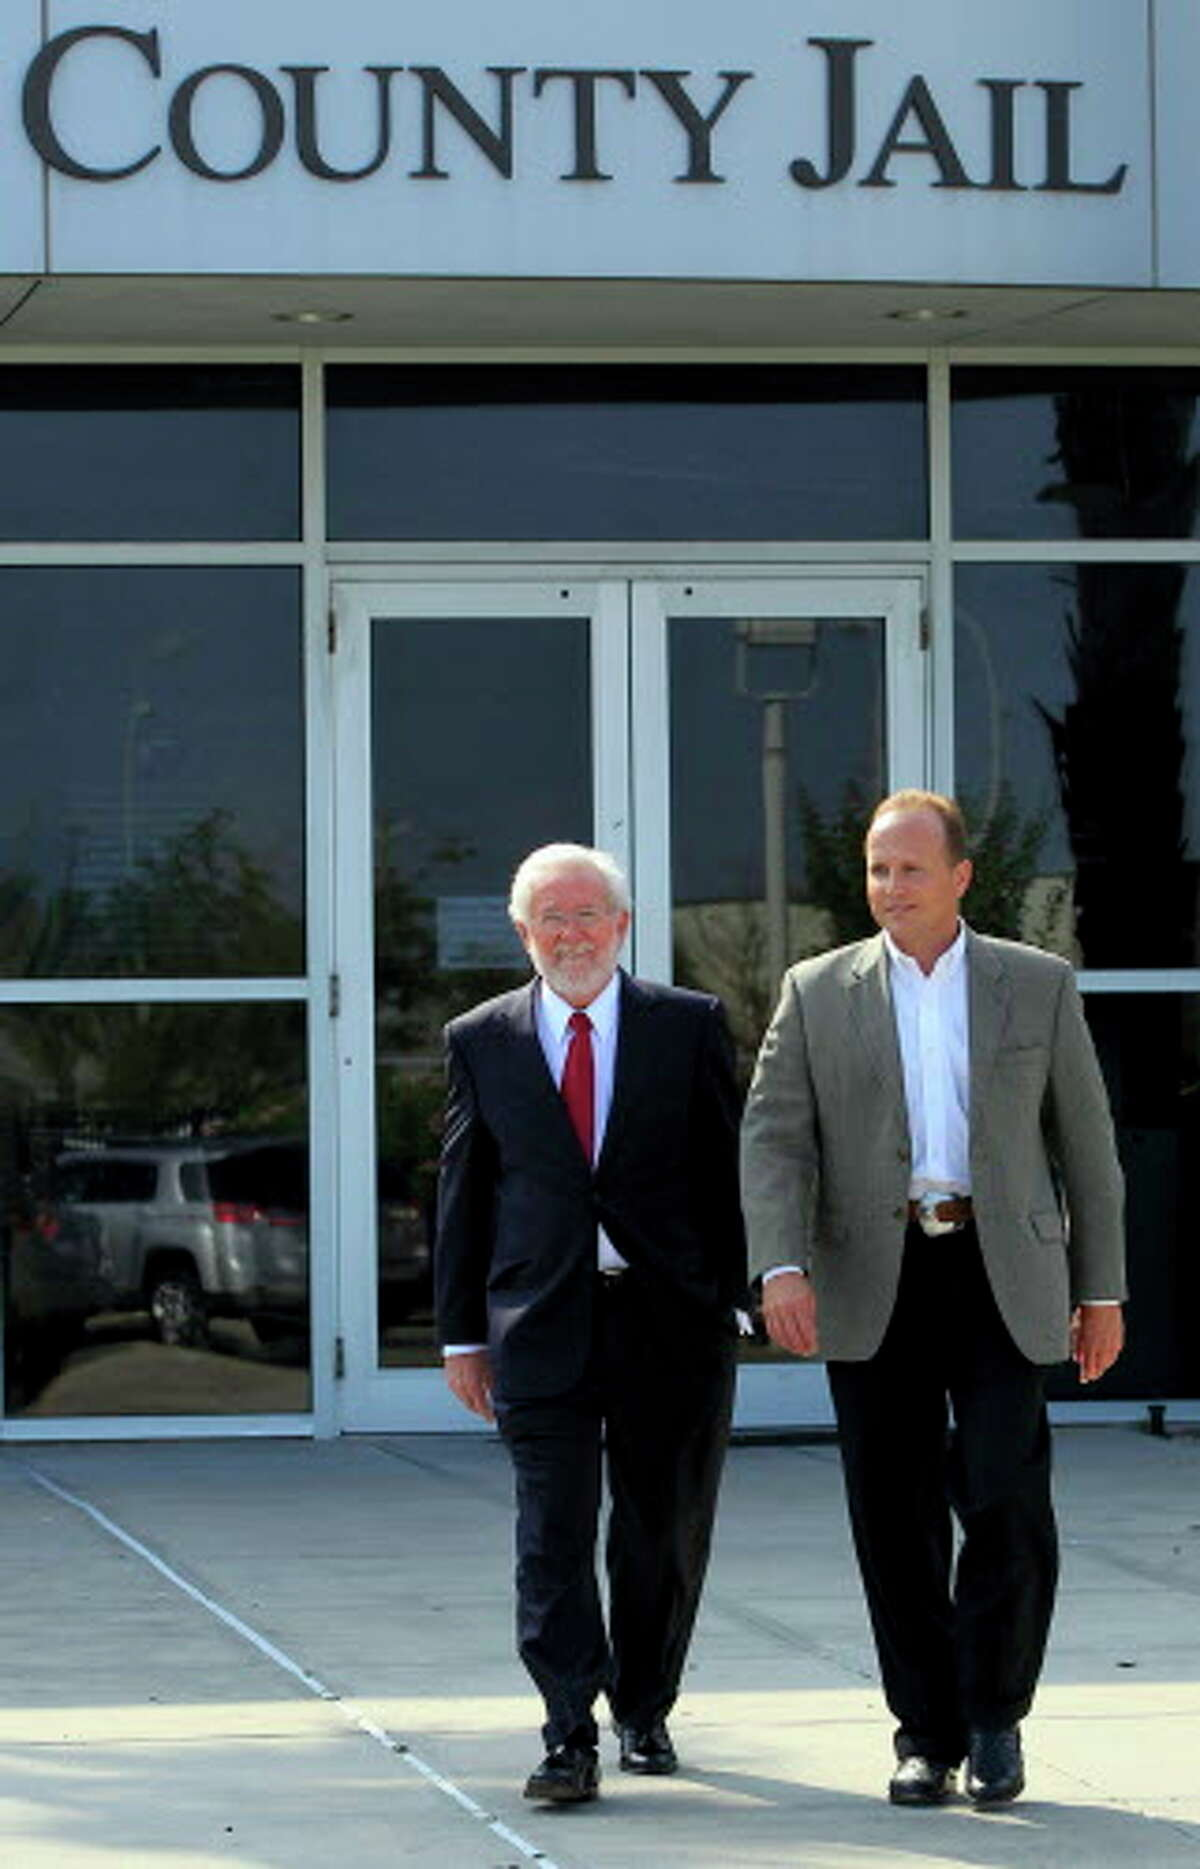 Judge Christopher Dupuy, right, leaves the Galveston County Jail with his attorney George Parnham after he was arrested and charged in 2013. >>Learn more about the crimes that shocked Texas in 2018 in the photos that follow...